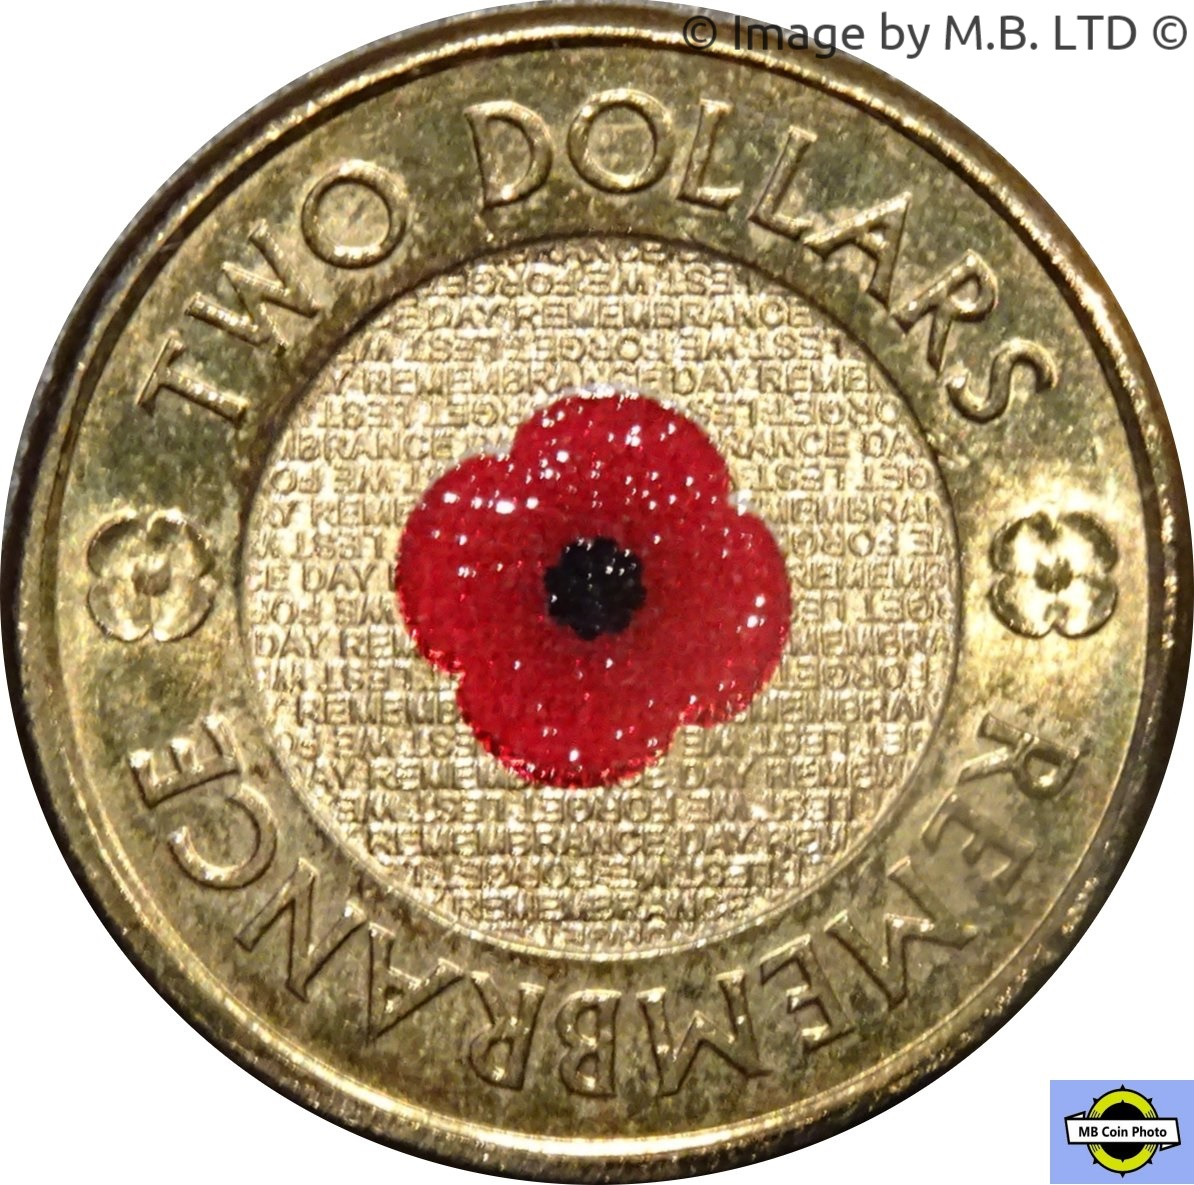 Remembrance Green Ring 2014 Australia UNC Two Dollar $2 Coin